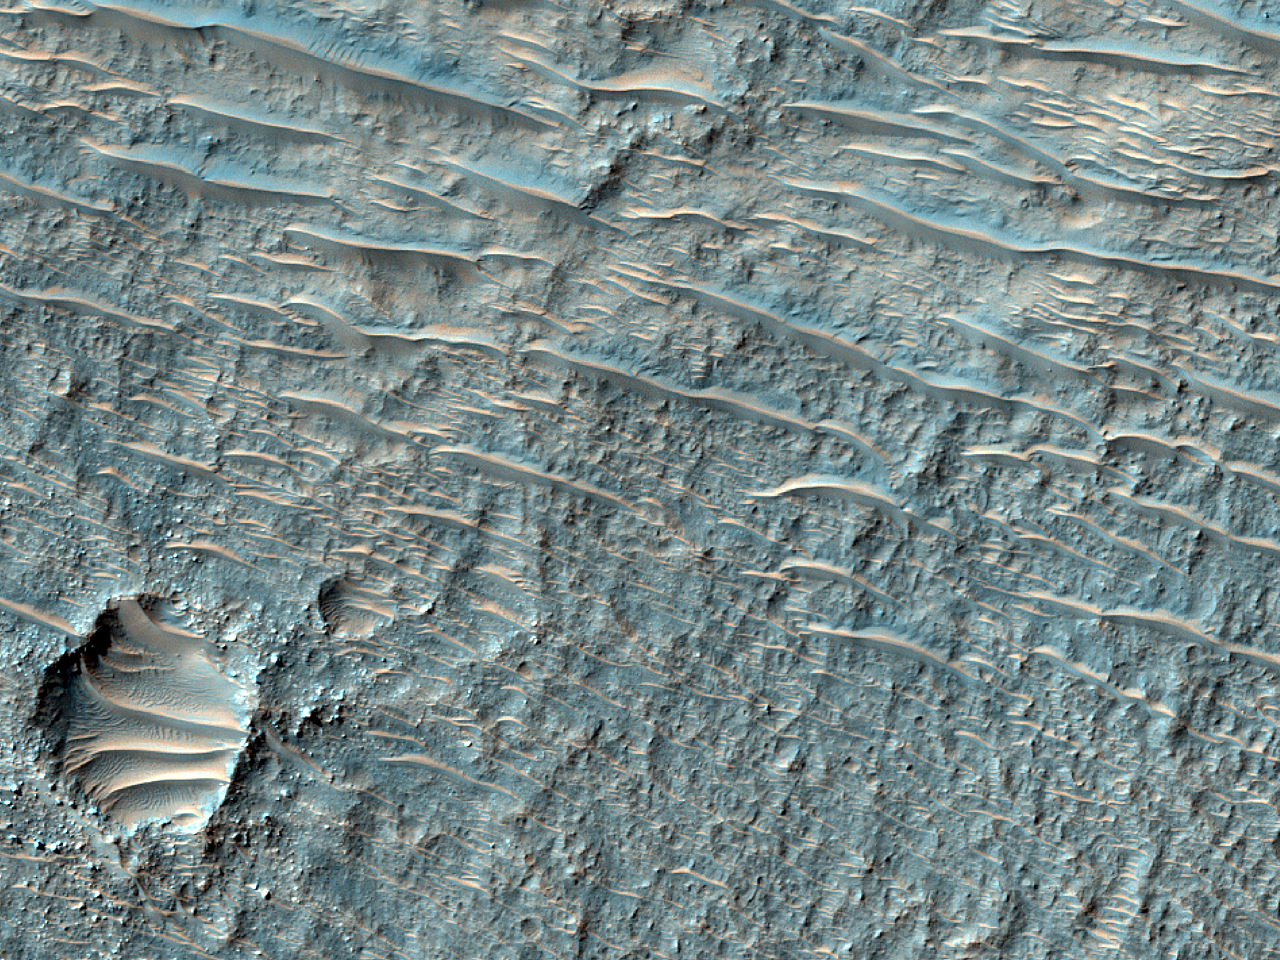 Peraea Cavus Sinuous Ridge and Bright Deposit